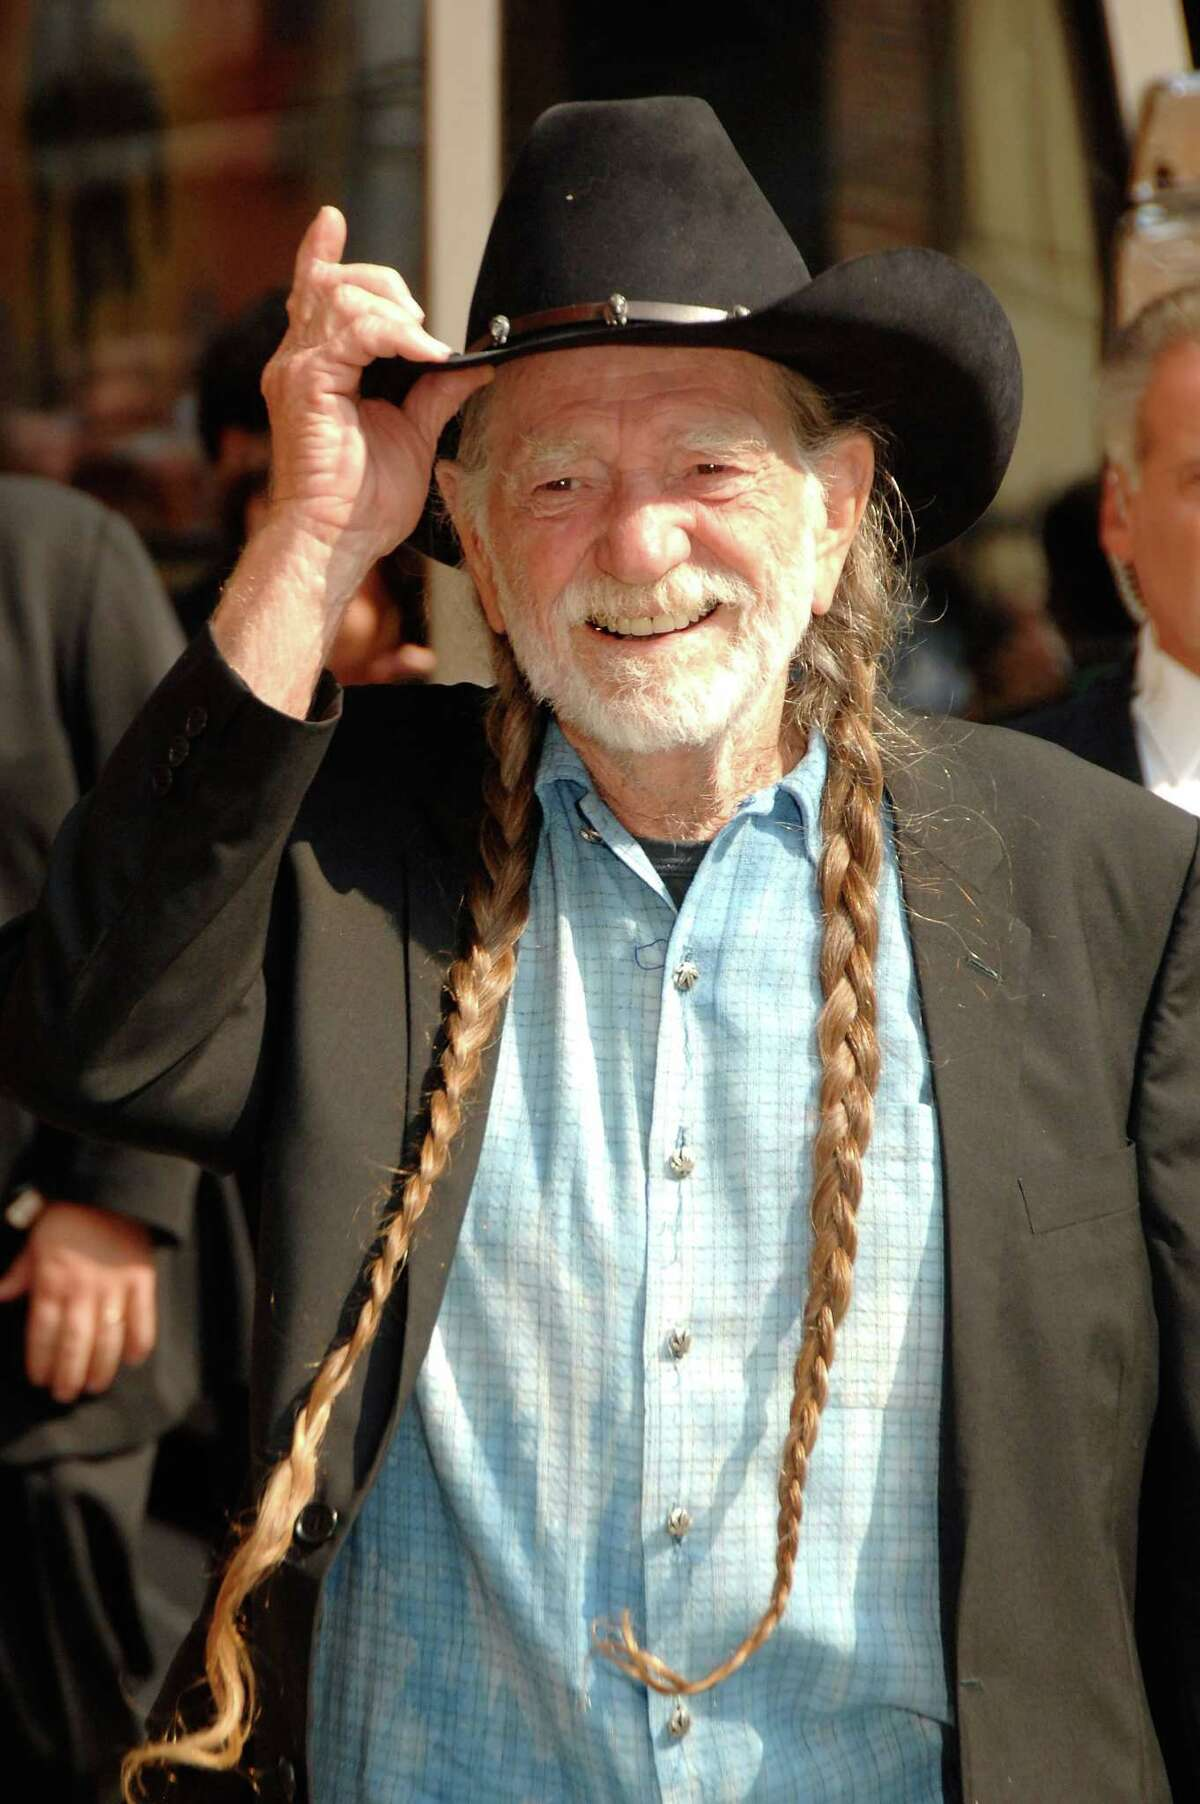 Willie Nelson has recorded and performed hundreds of songs with dozens of players in more than 50 years of making music. Inevitably some of the people involved in the creation of this body of work have passed on. The following are some of the influential and important figures in Nelson's creative life.